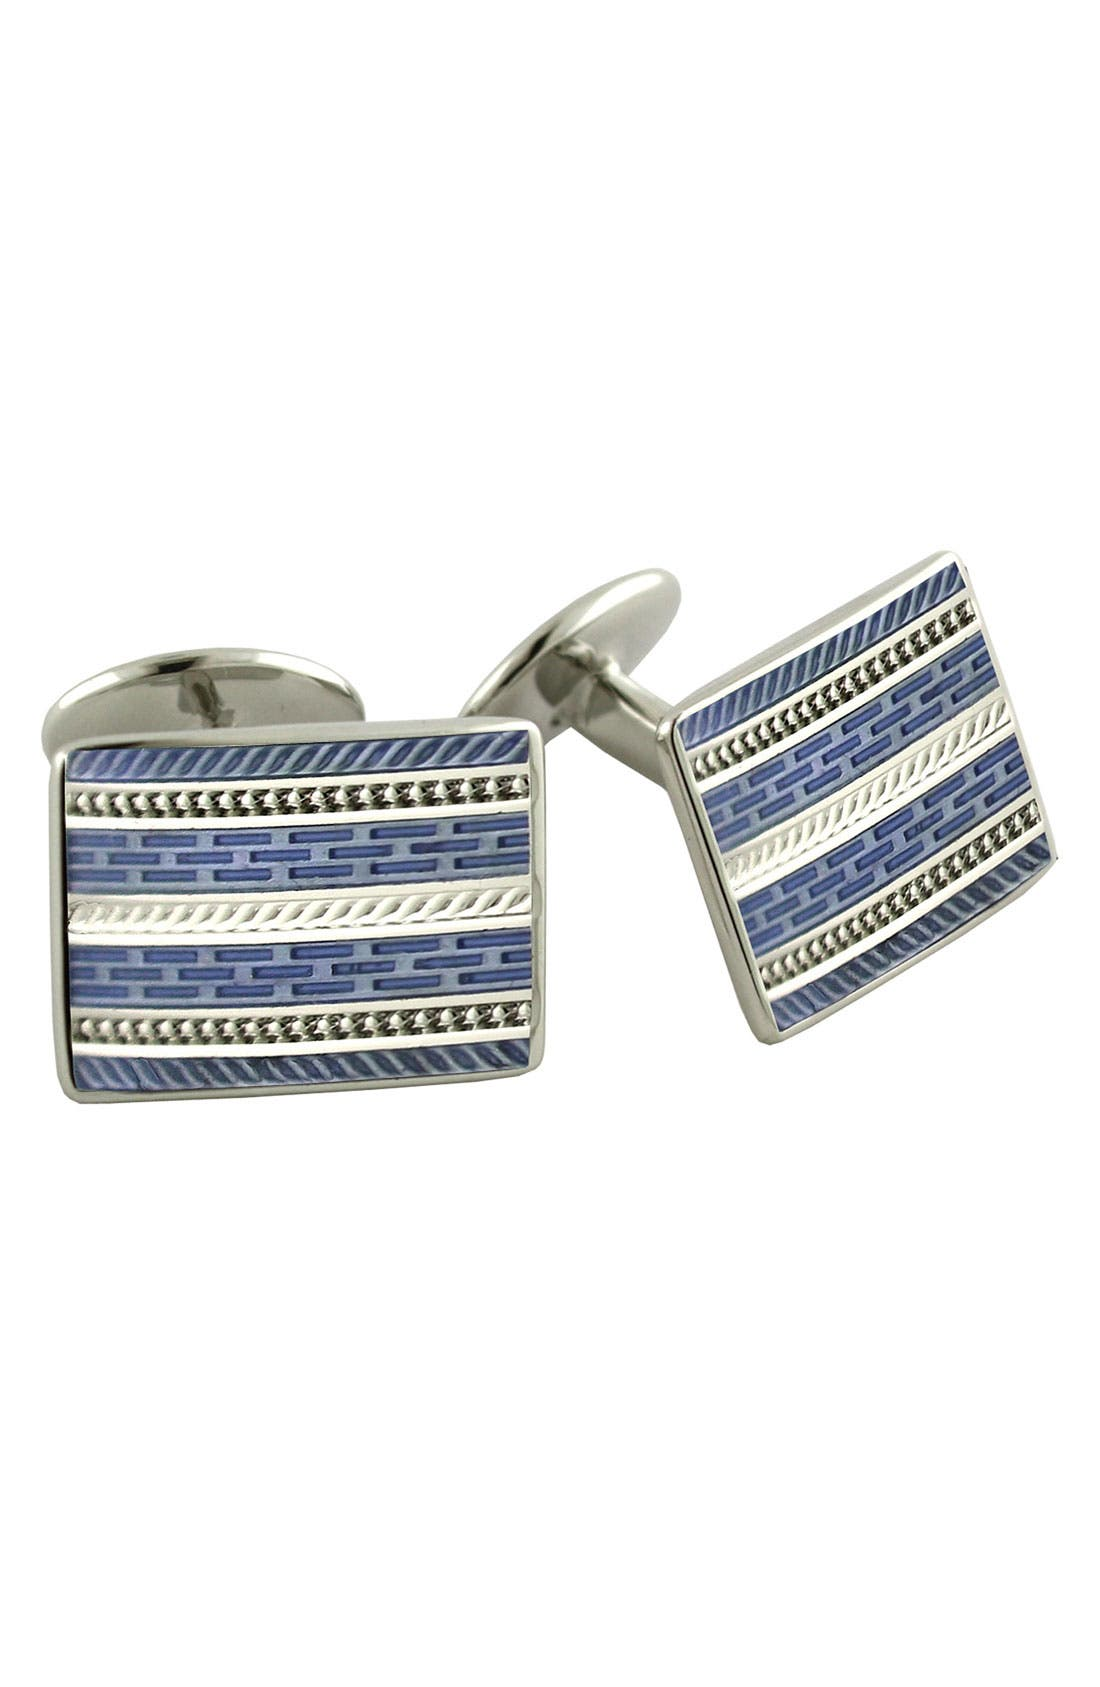 Alternate Image 1 Selected - David Donahue 'Blue' Rectangular Sterling Silver Cuff Links